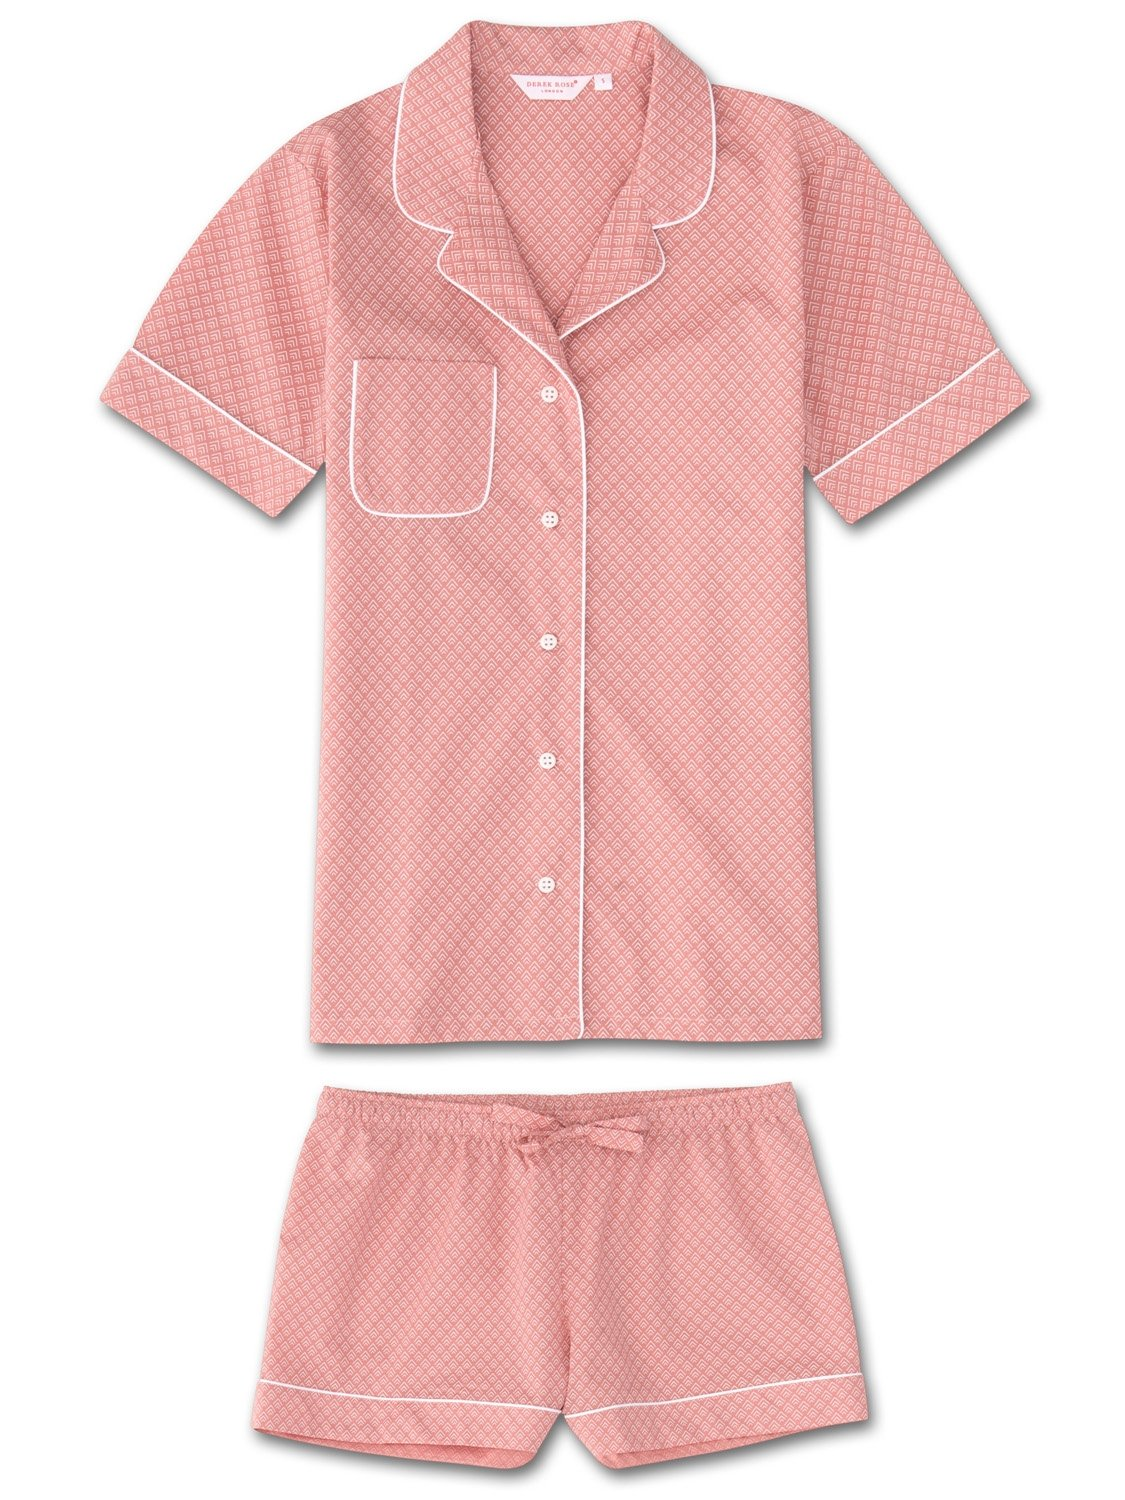 Women's Shortie Pyjamas Nelson 66 Cotton Batiste Pink